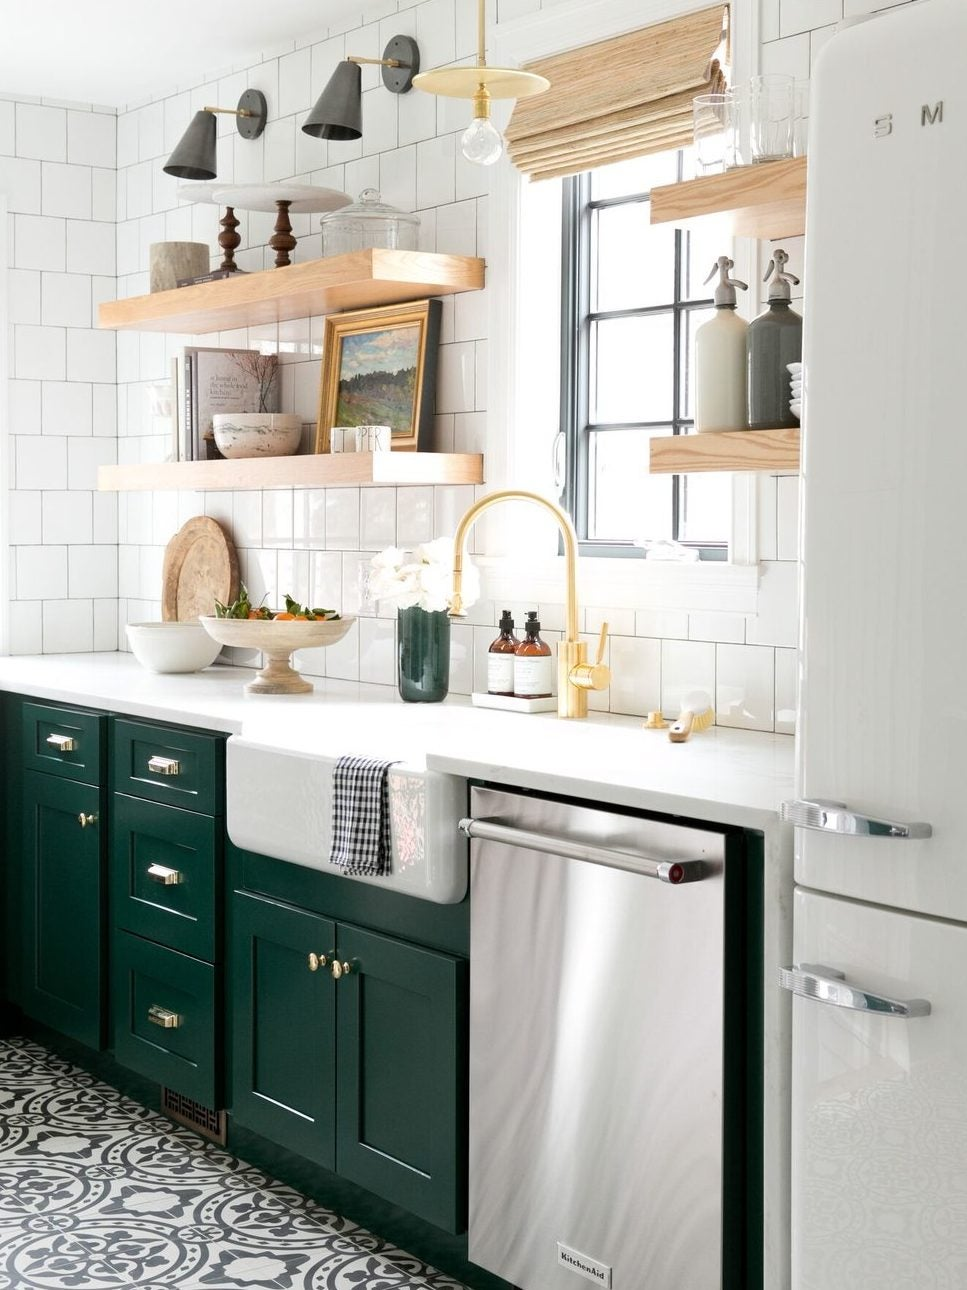 black and white tile kitchen floors with dark green cabinets